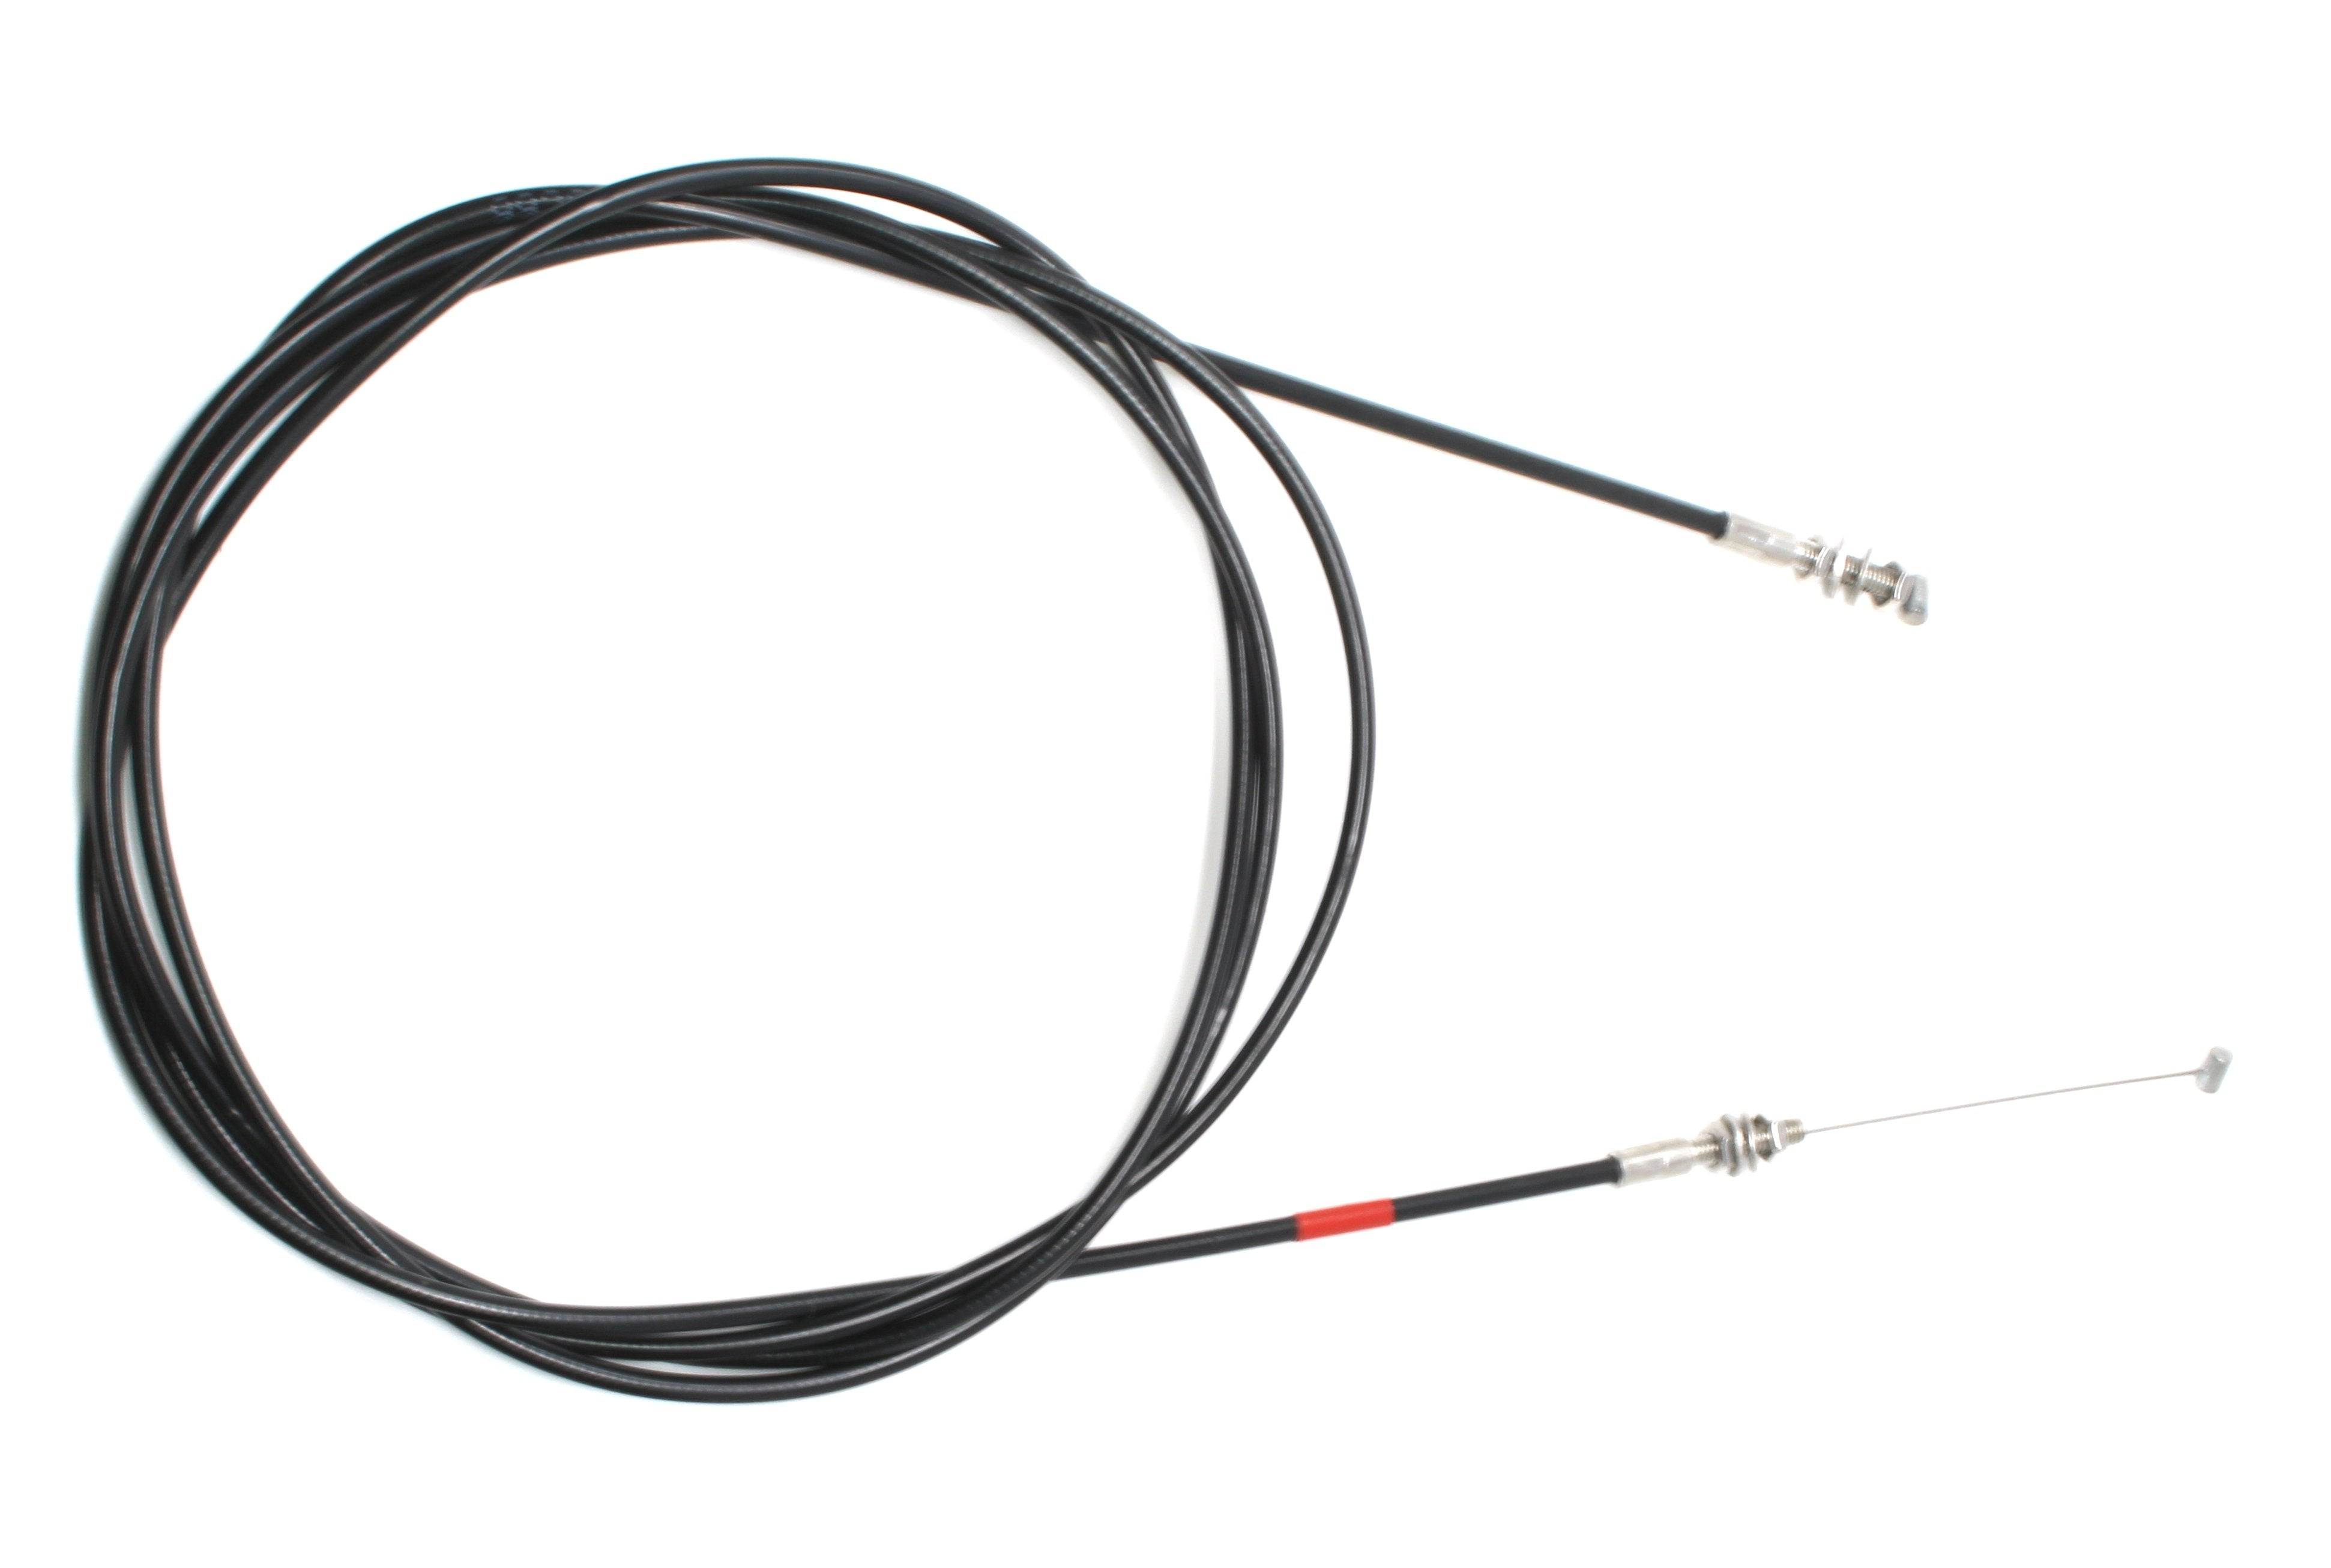 Aftermarket Left Throttle Cable Replacement for Sea-Doo